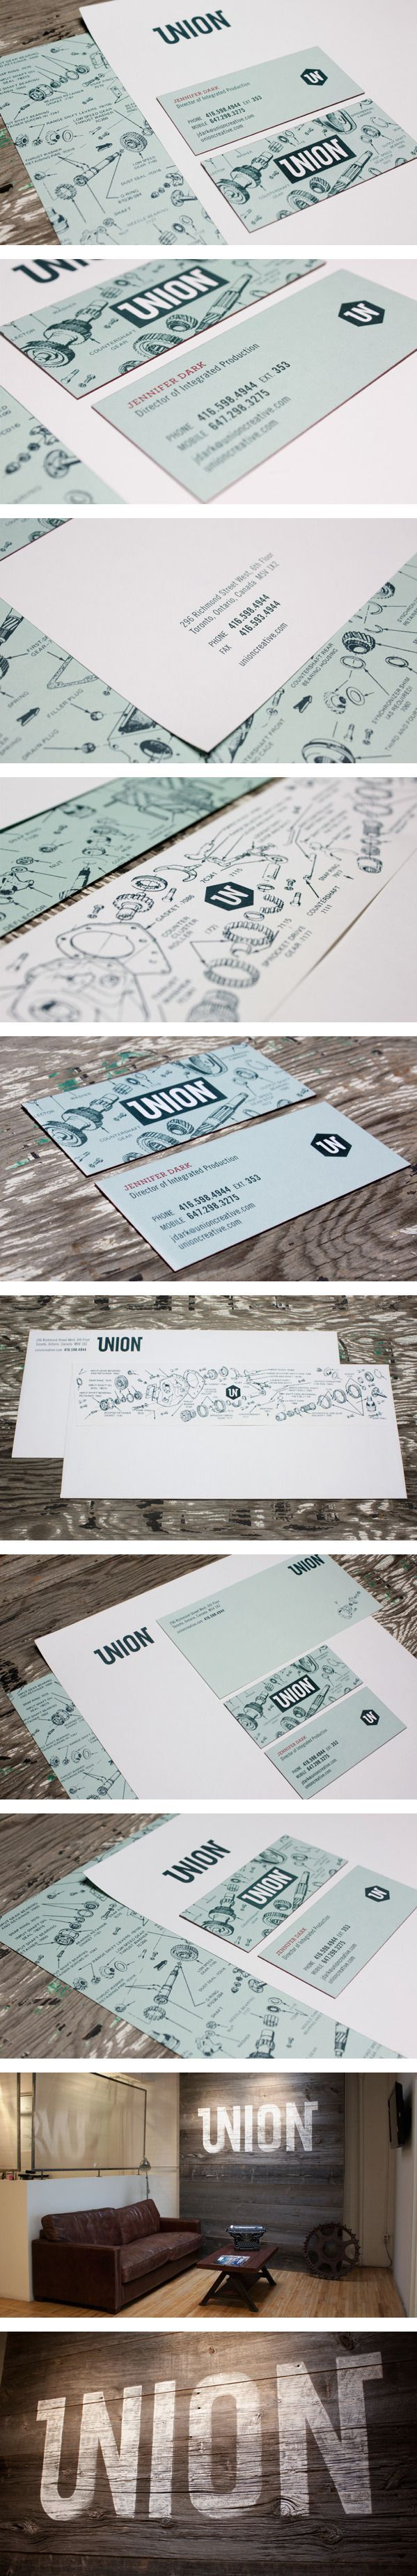 Union by Catherine McLeod Curated by: Transition Marketing Services   Small Business Branding & Marketing Professionals http://www.transitionmarketing.ca